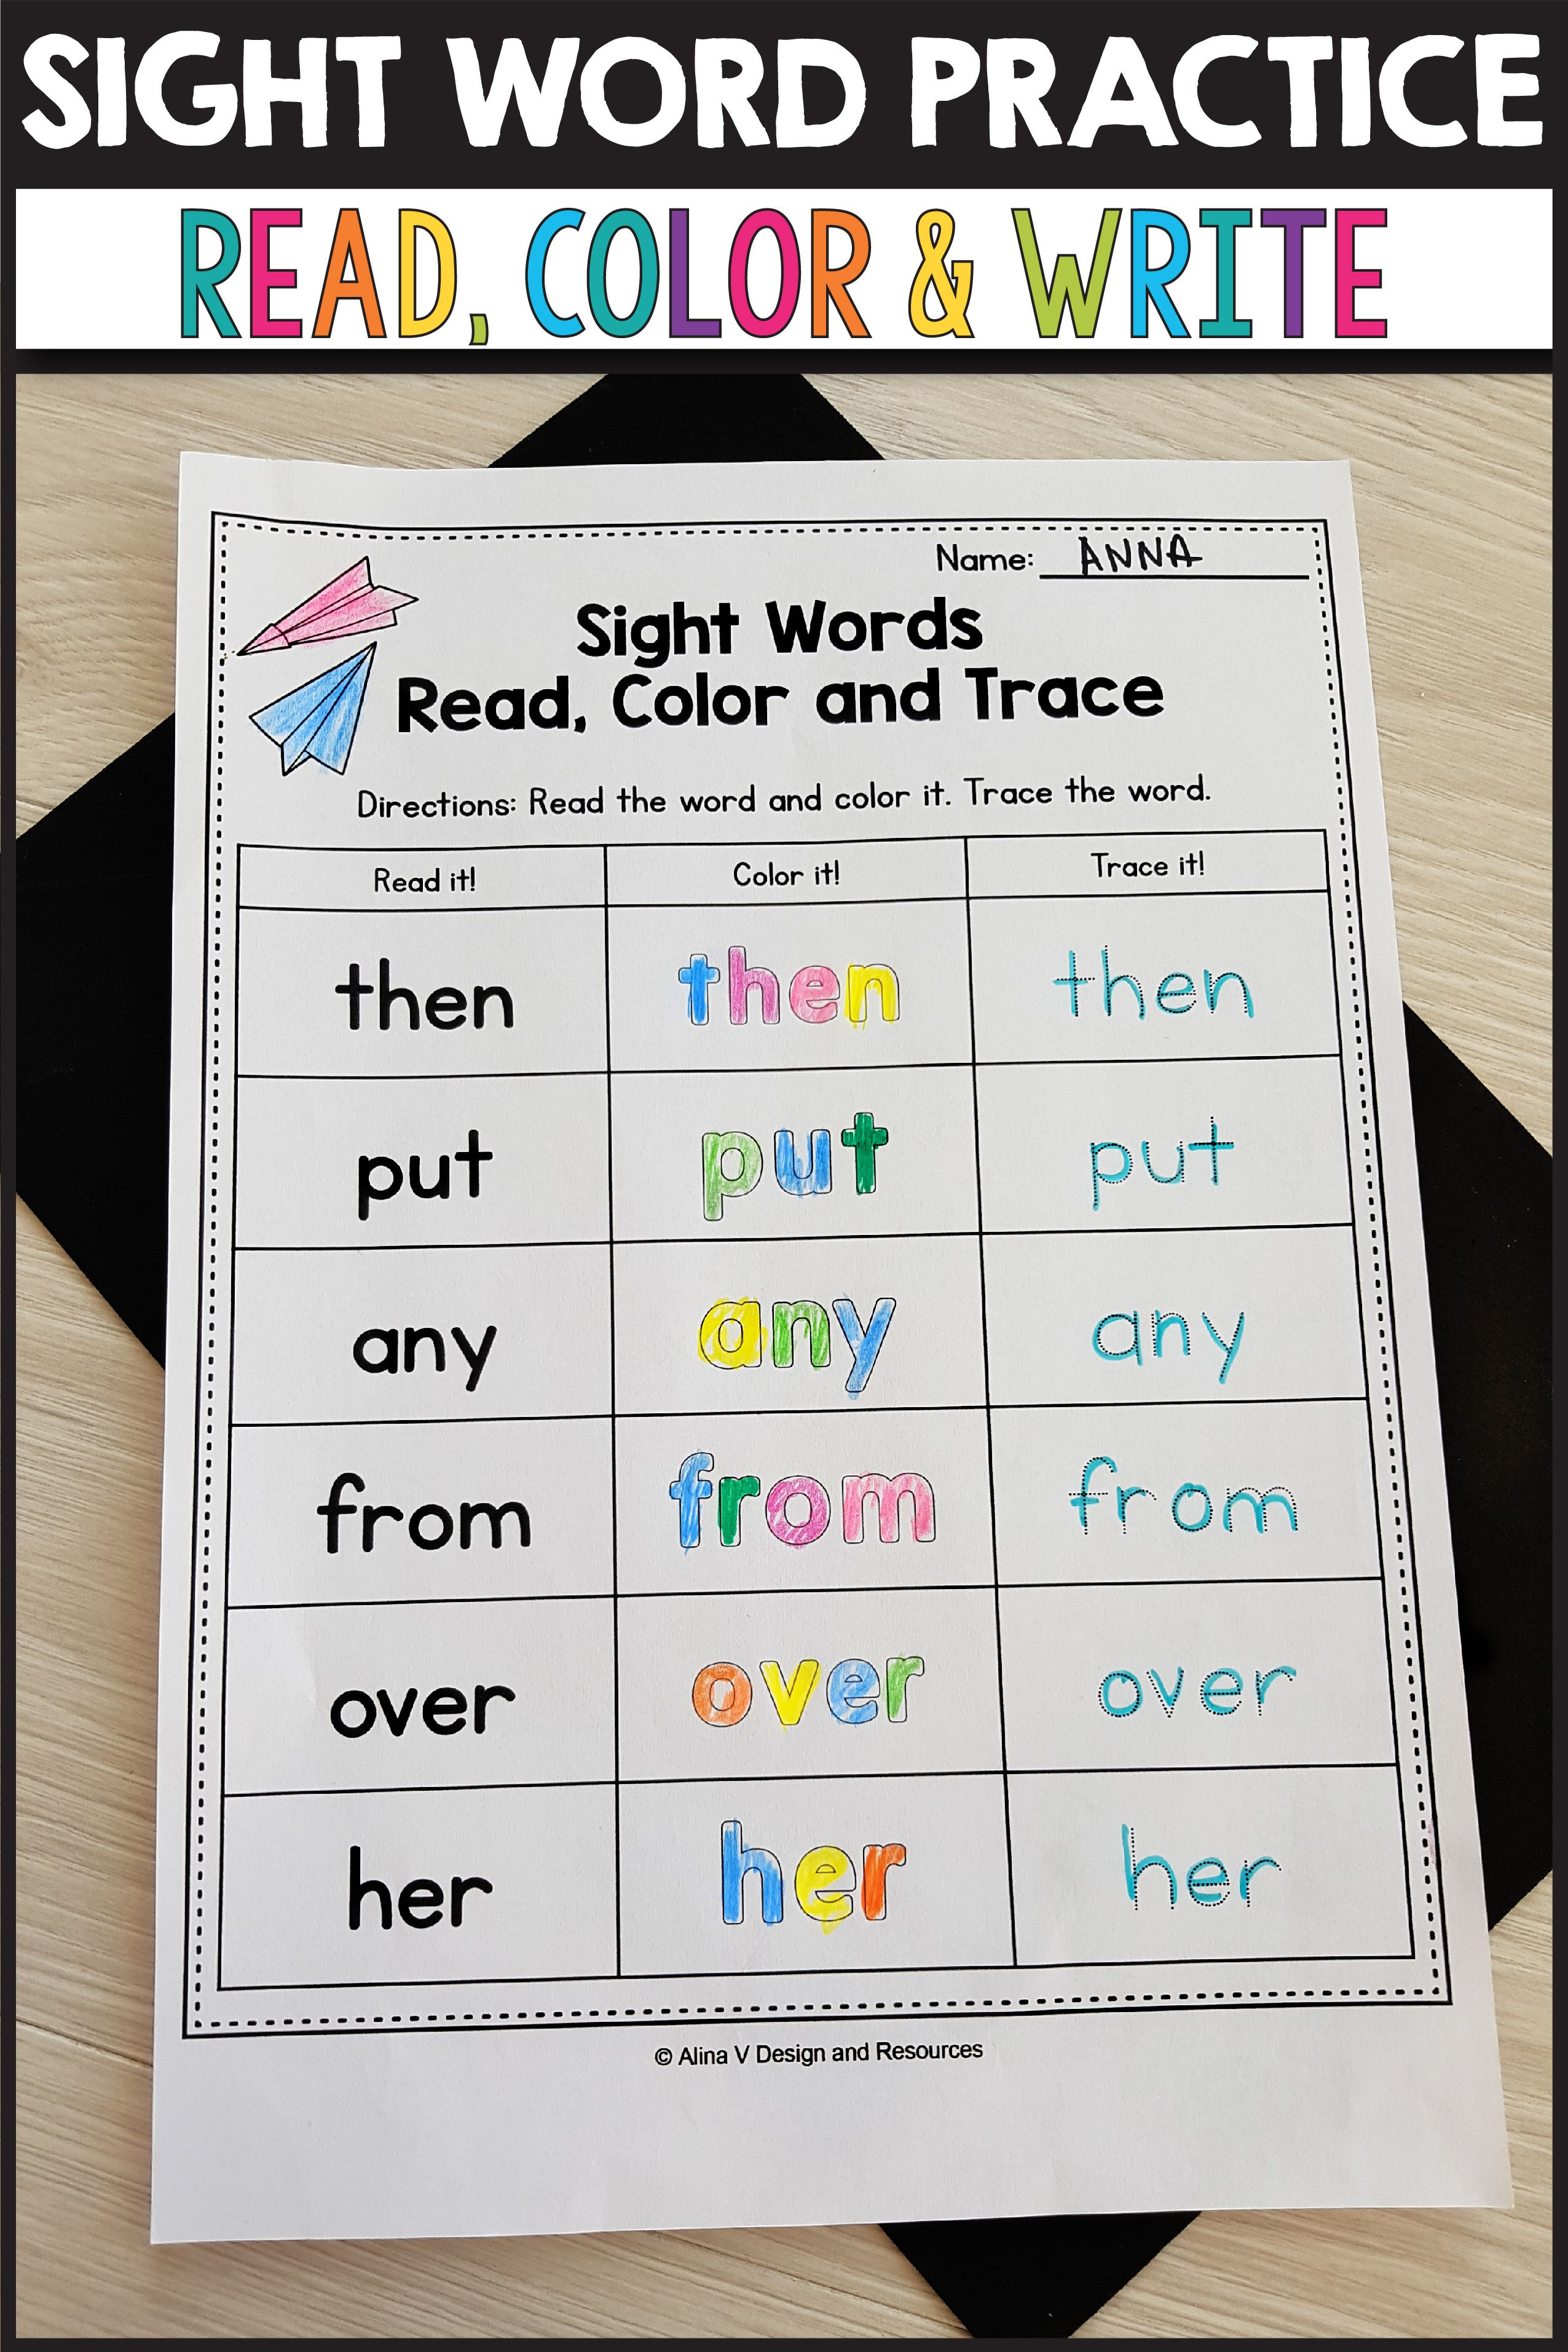 Practice Sight Words At Home Rainbow Writing For Sight Words Read Color Trace Sight Words Sight Word Reading Word Activities [ 3826 x 2551 Pixel ]